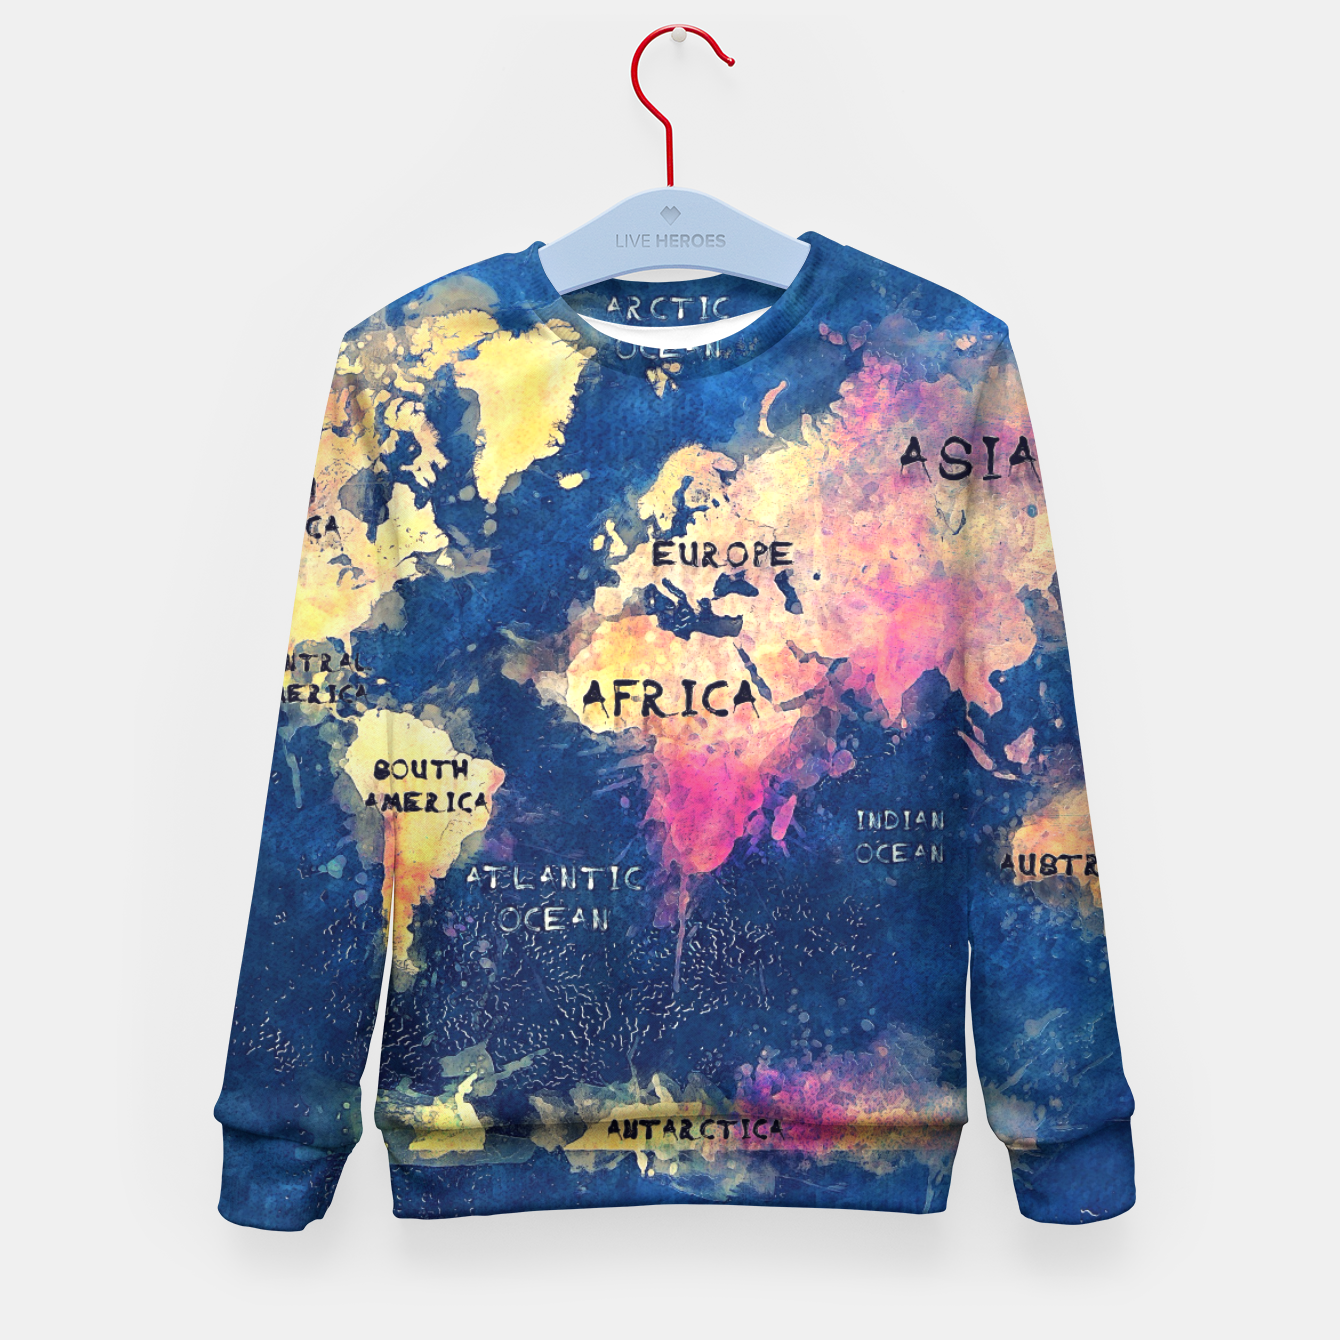 World Map Sweater.World Map Oceans And Continents Kid S Sweater Live Heroes